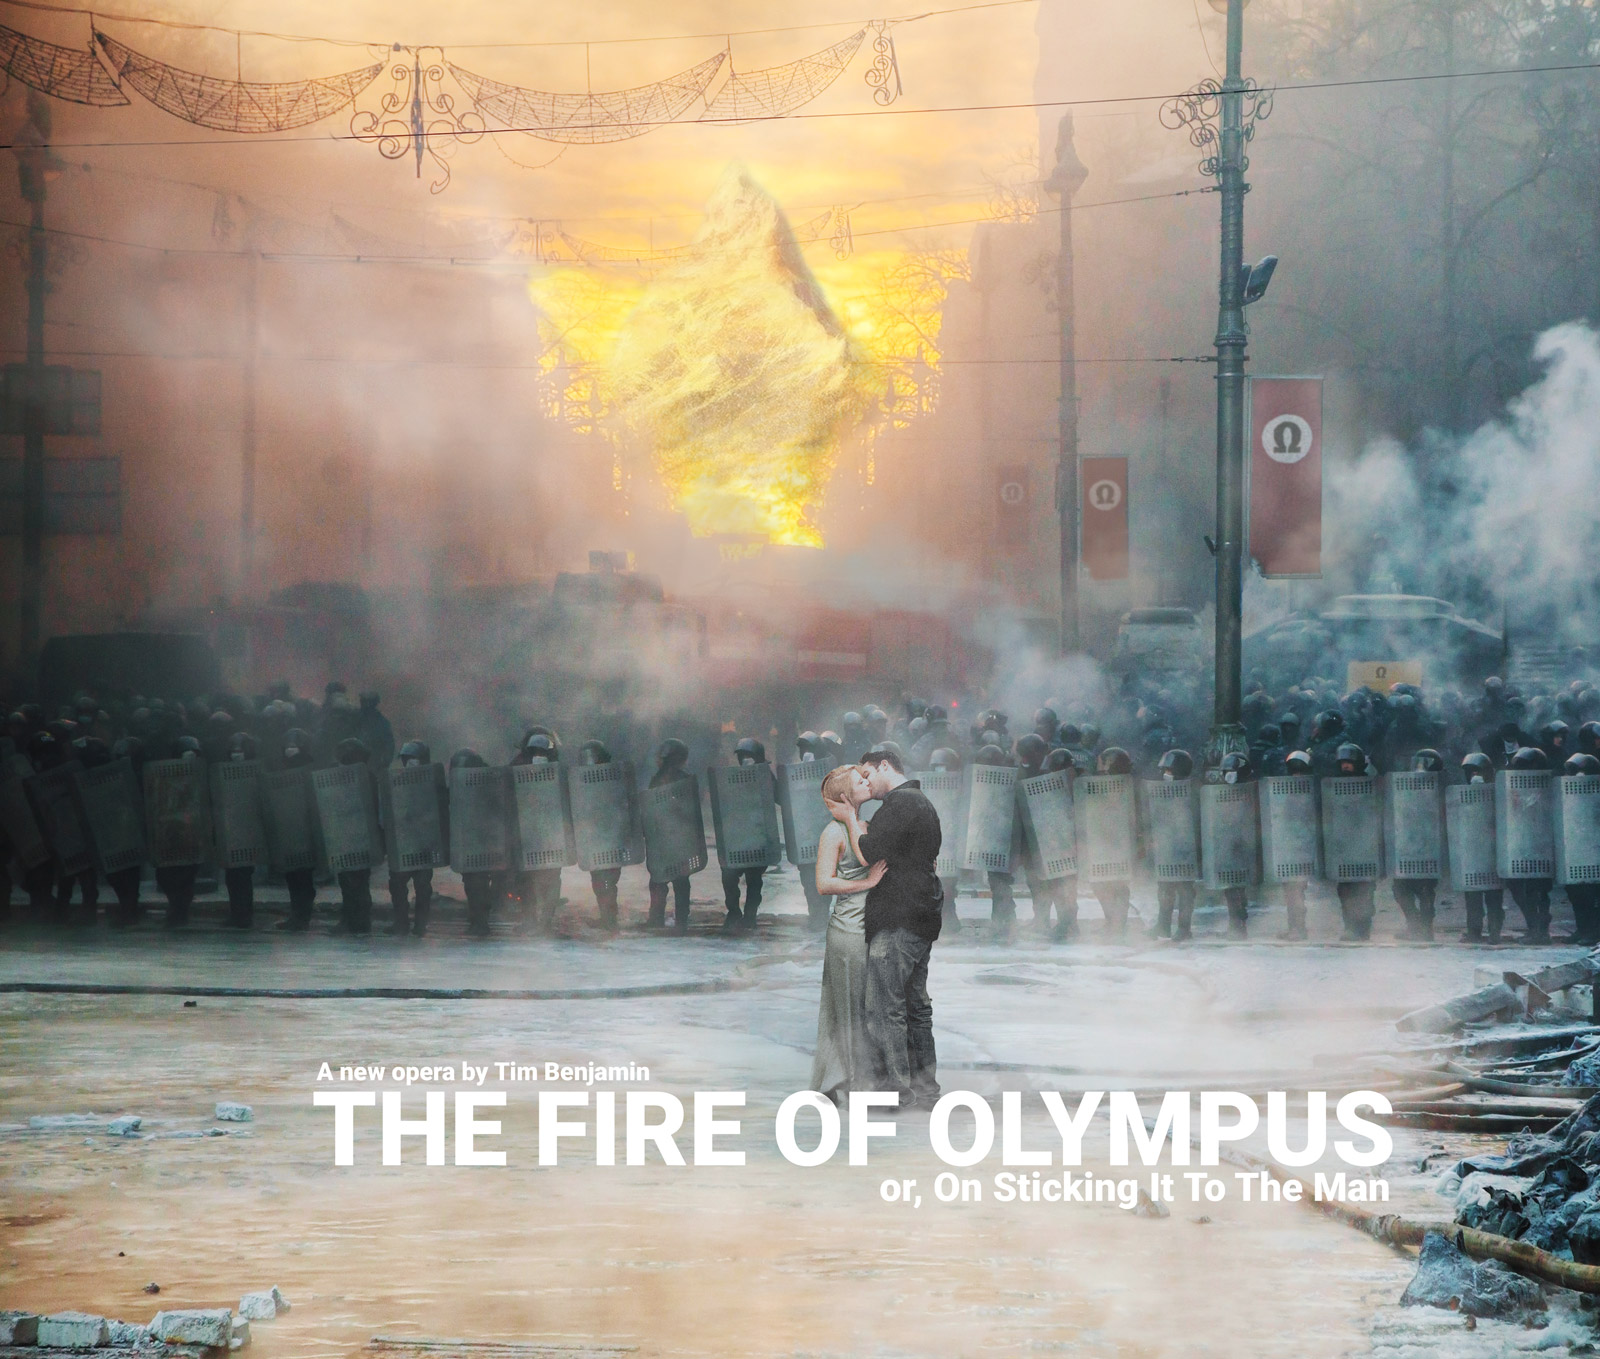 The Fire Of Olympus; or, On Sticking It To The Man